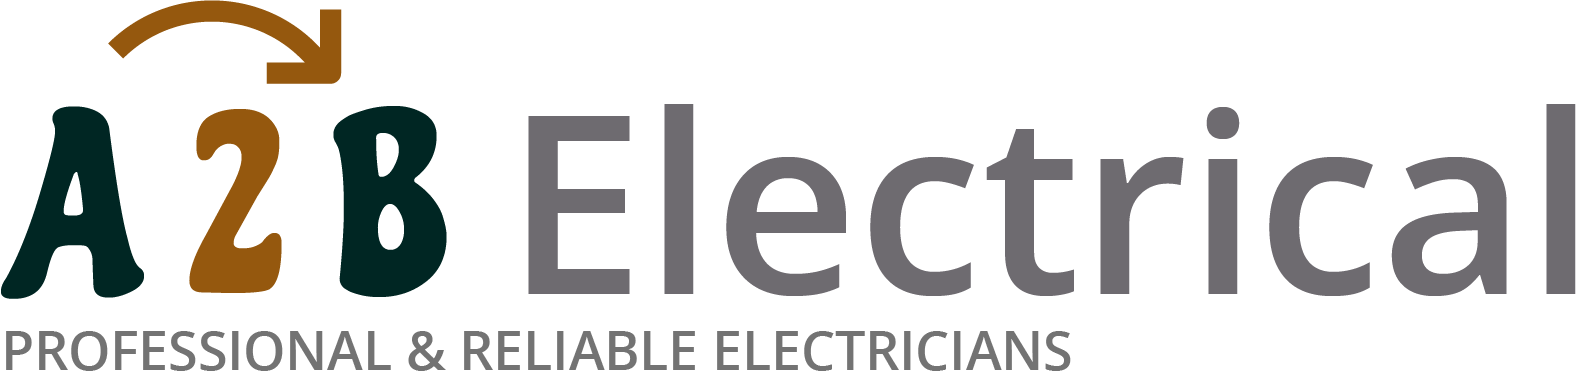 If you have electrical wiring problems in Woolwich, we can provide an electrician to have a look for you.